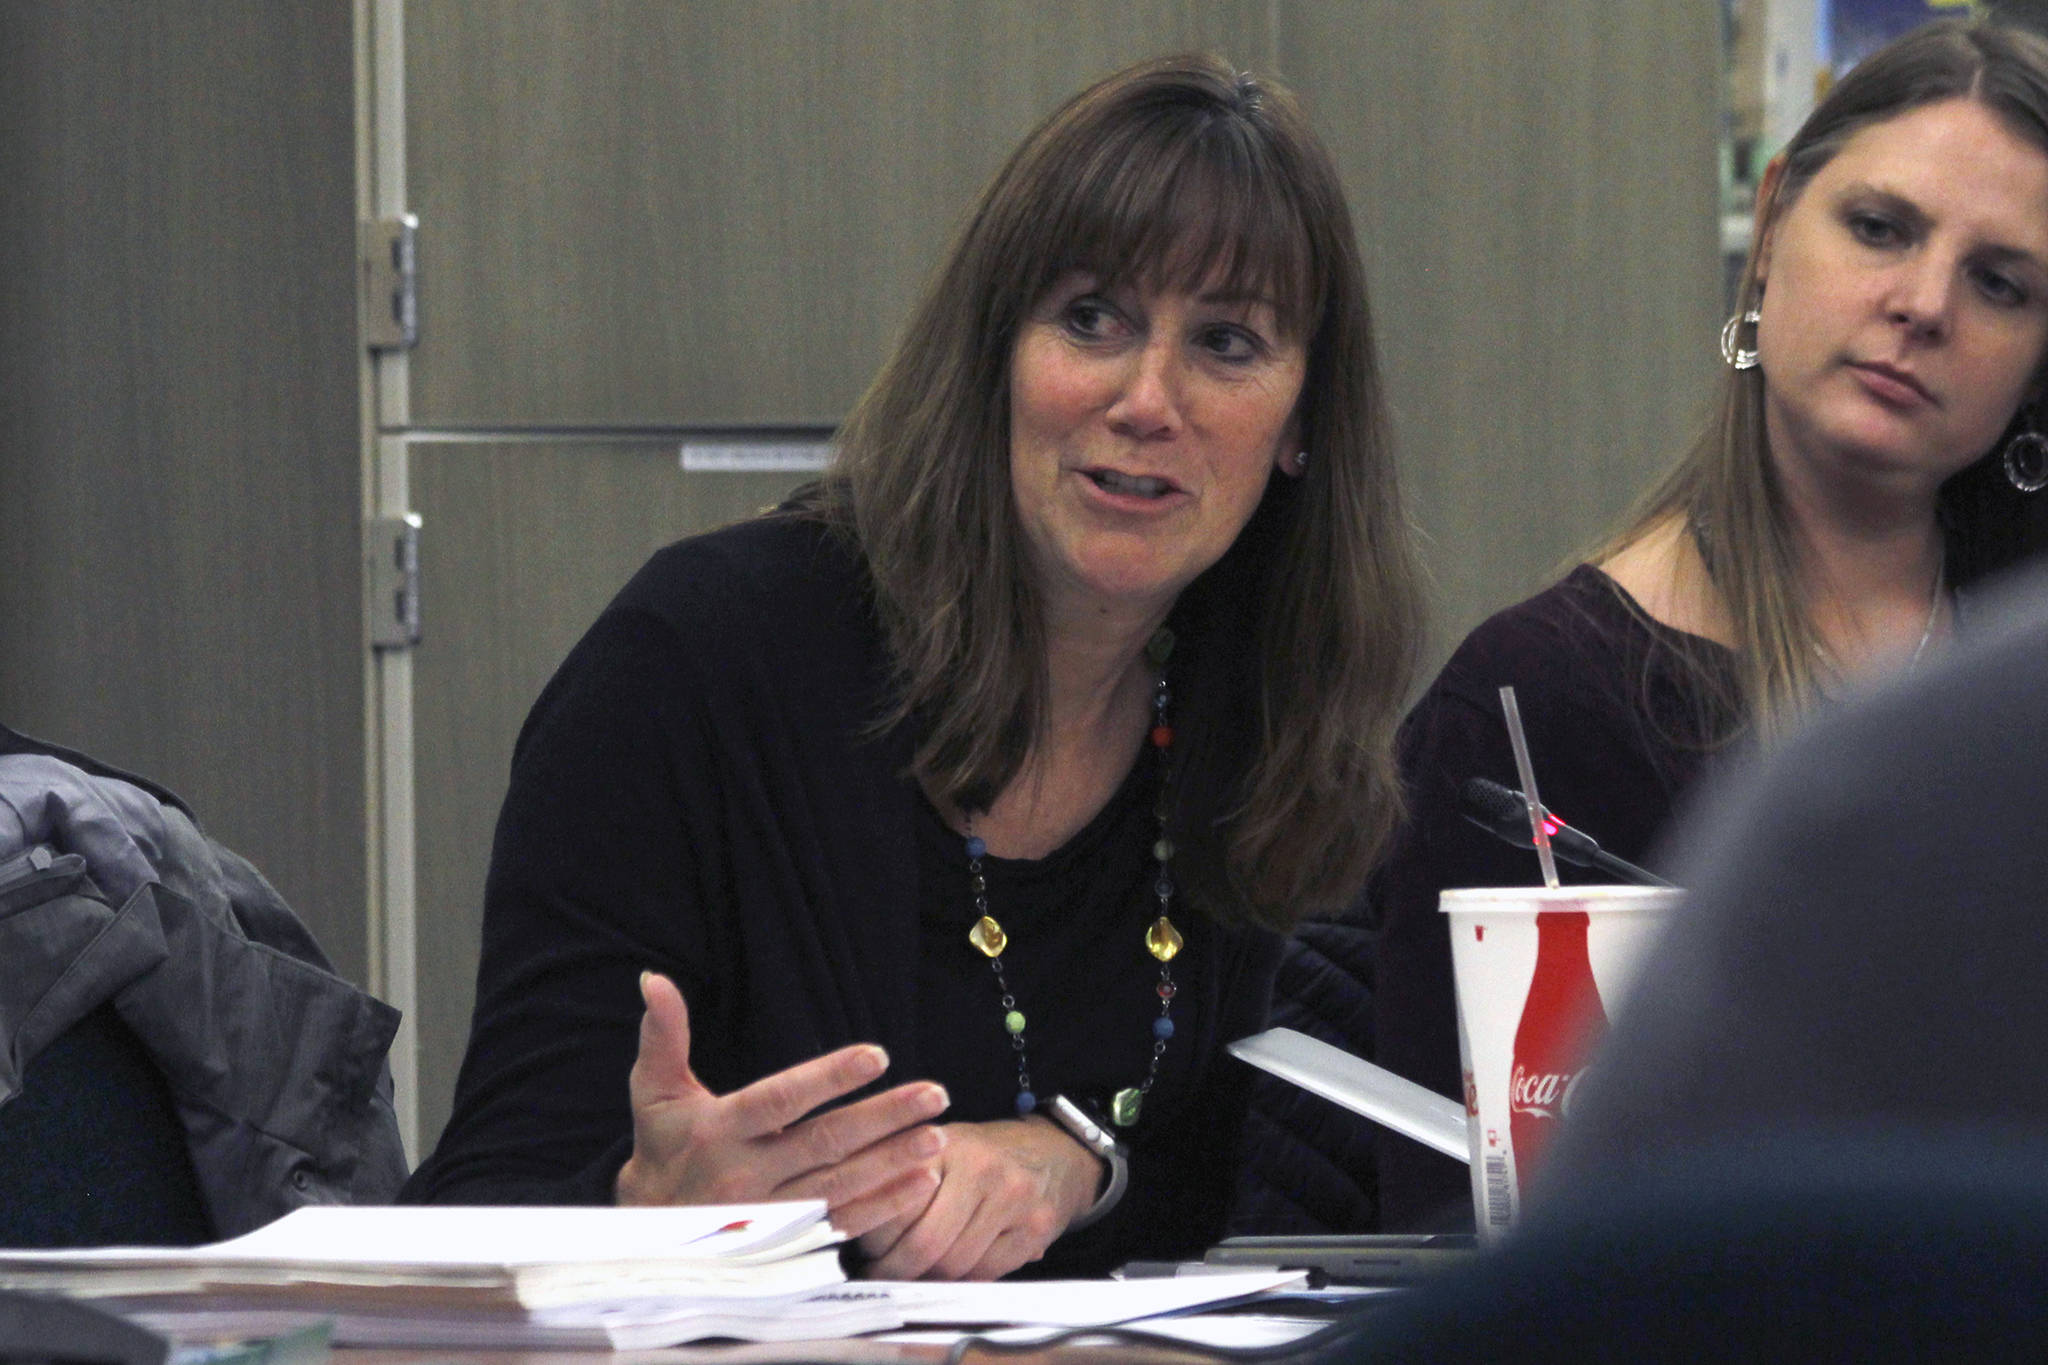 Juneau School District Superintendent Bridget Weiss speaks during a Board of Education meeting on Tuesday, Nov. 13, 2018. Weiss is currently the interim superintendent, and the board members discussed next steps for selecting a permanent superintendent at Tuesday's meeting. (Alex McCarthy | Juneau Empire)